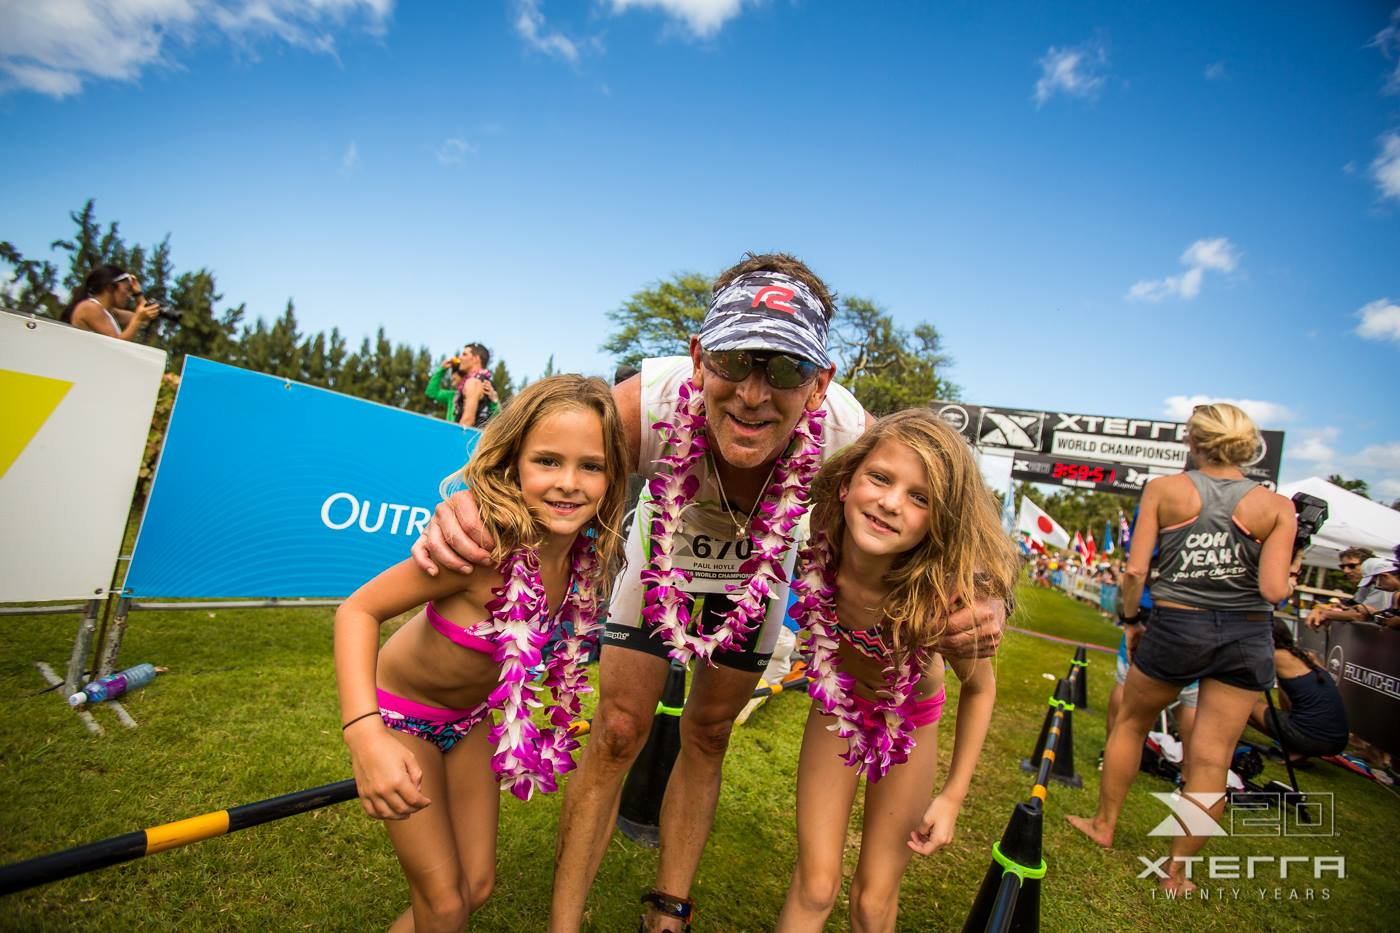 XTERRA_WORLD_CHAMPIONSHIP_2015_00085